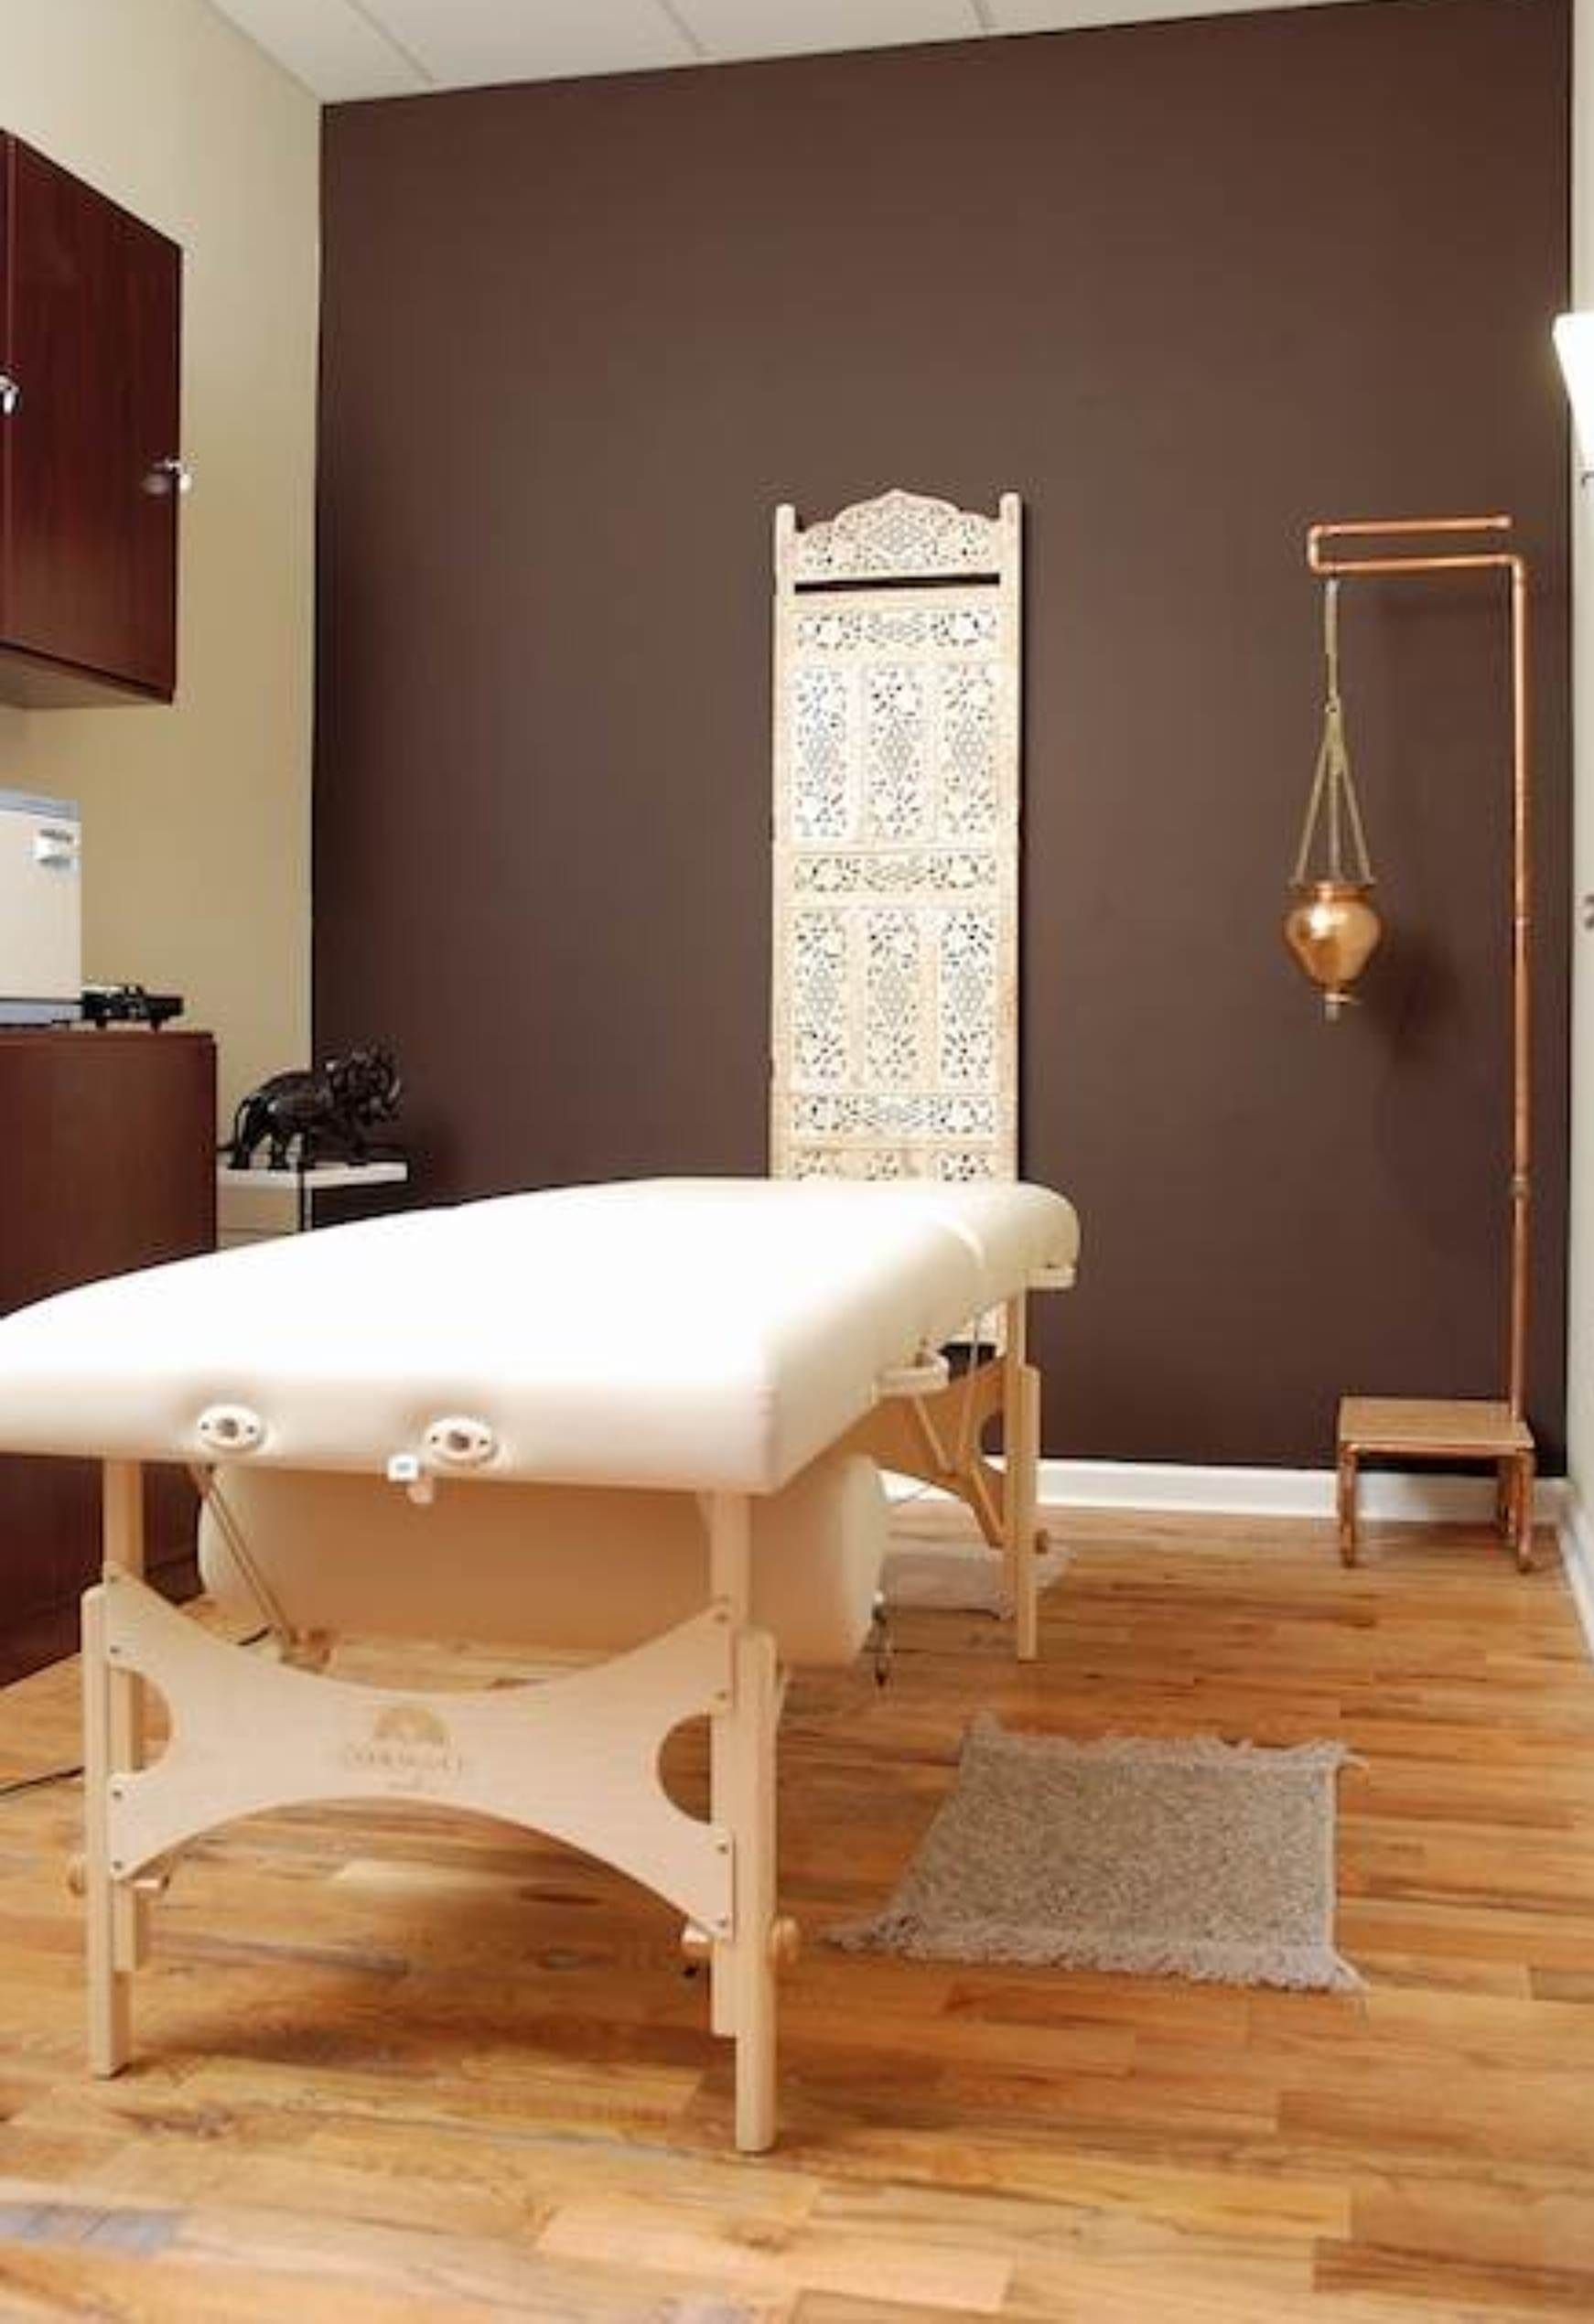 Ideas Para Decorar Sala De Masajes Decorating Massage Room Ideas Salas De Masaje Pinterest